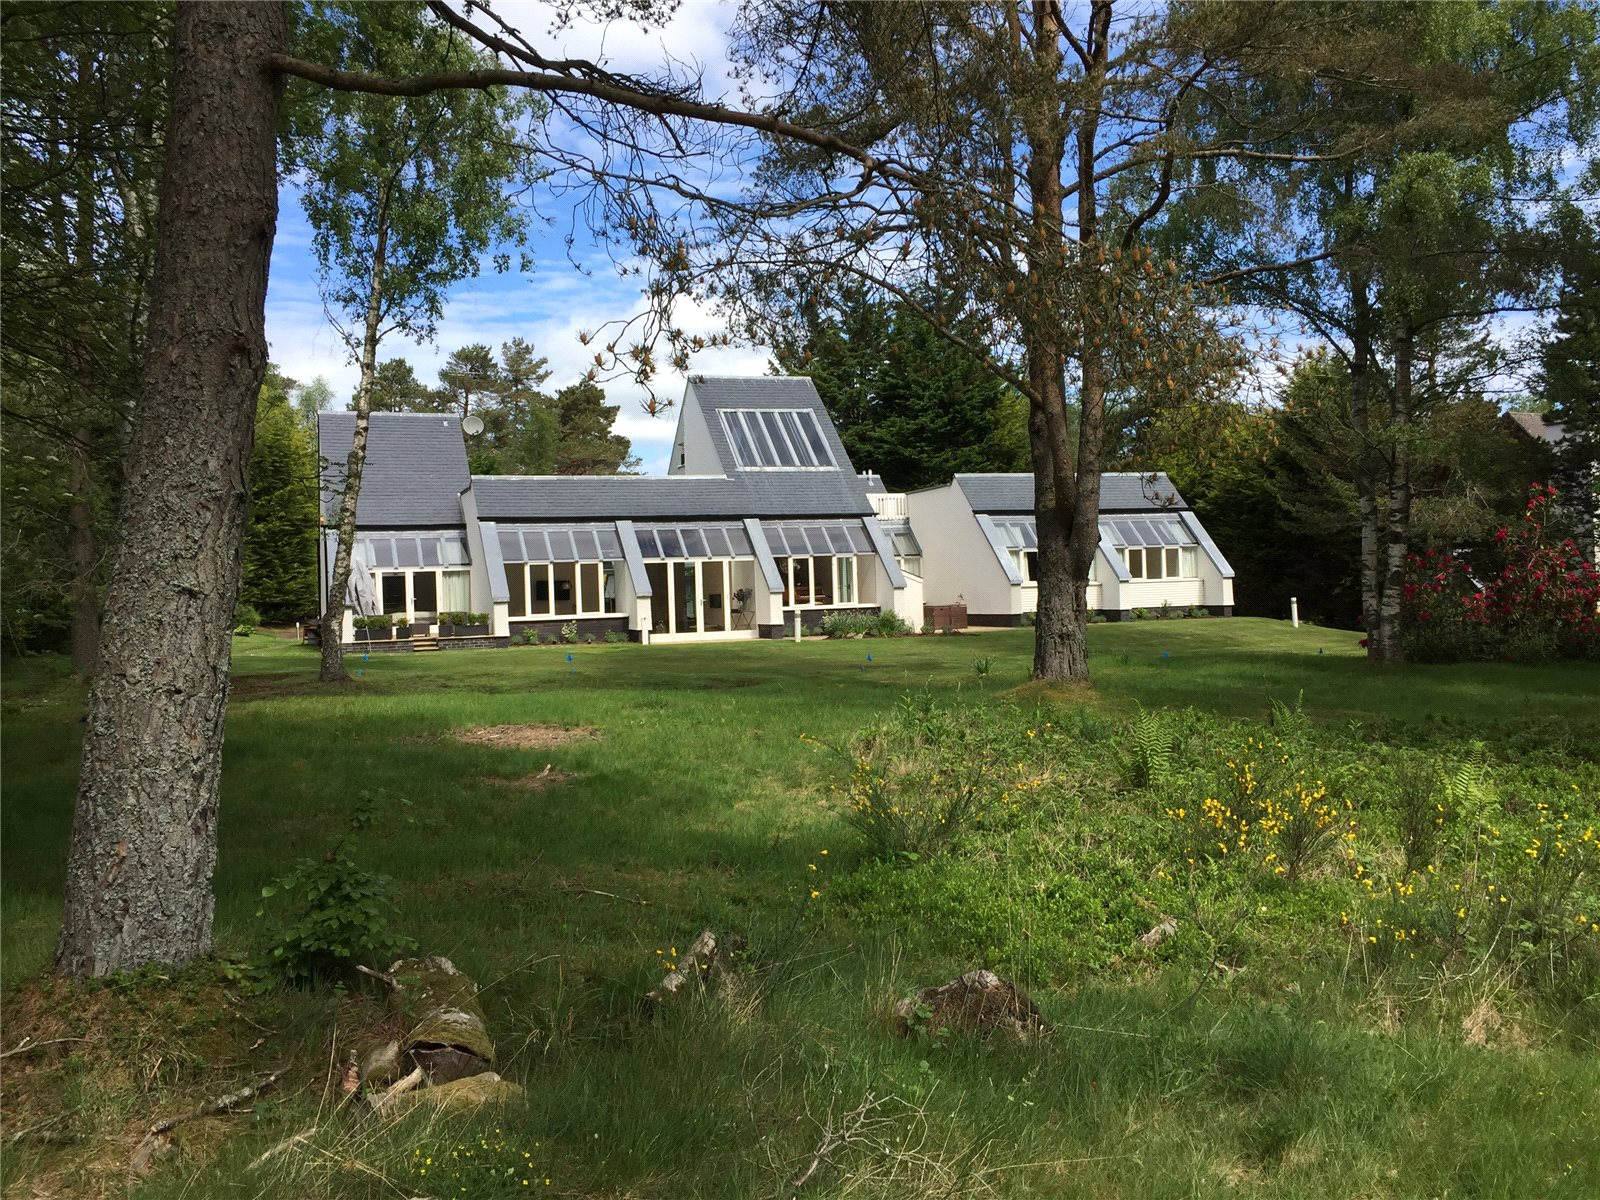 Single Family Home for Sale at Balmoral Court, Gleneagles Village, Auchterarder, Perthshire, PH3 Perthshire, Scotland